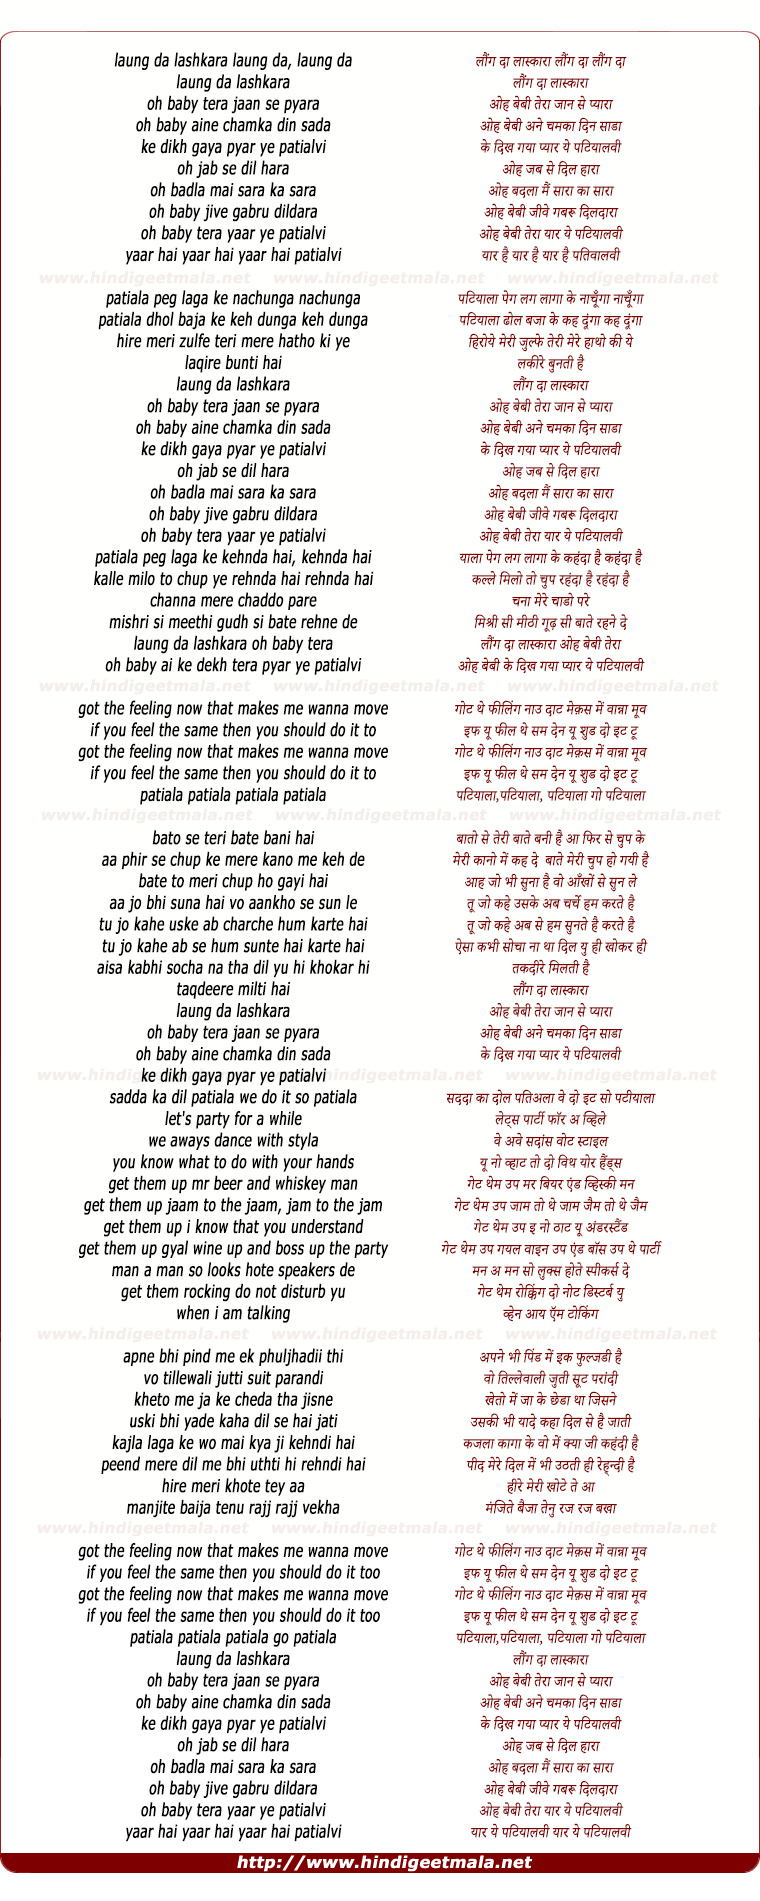 lyrics of song Laung Da Lashkara (Remix)